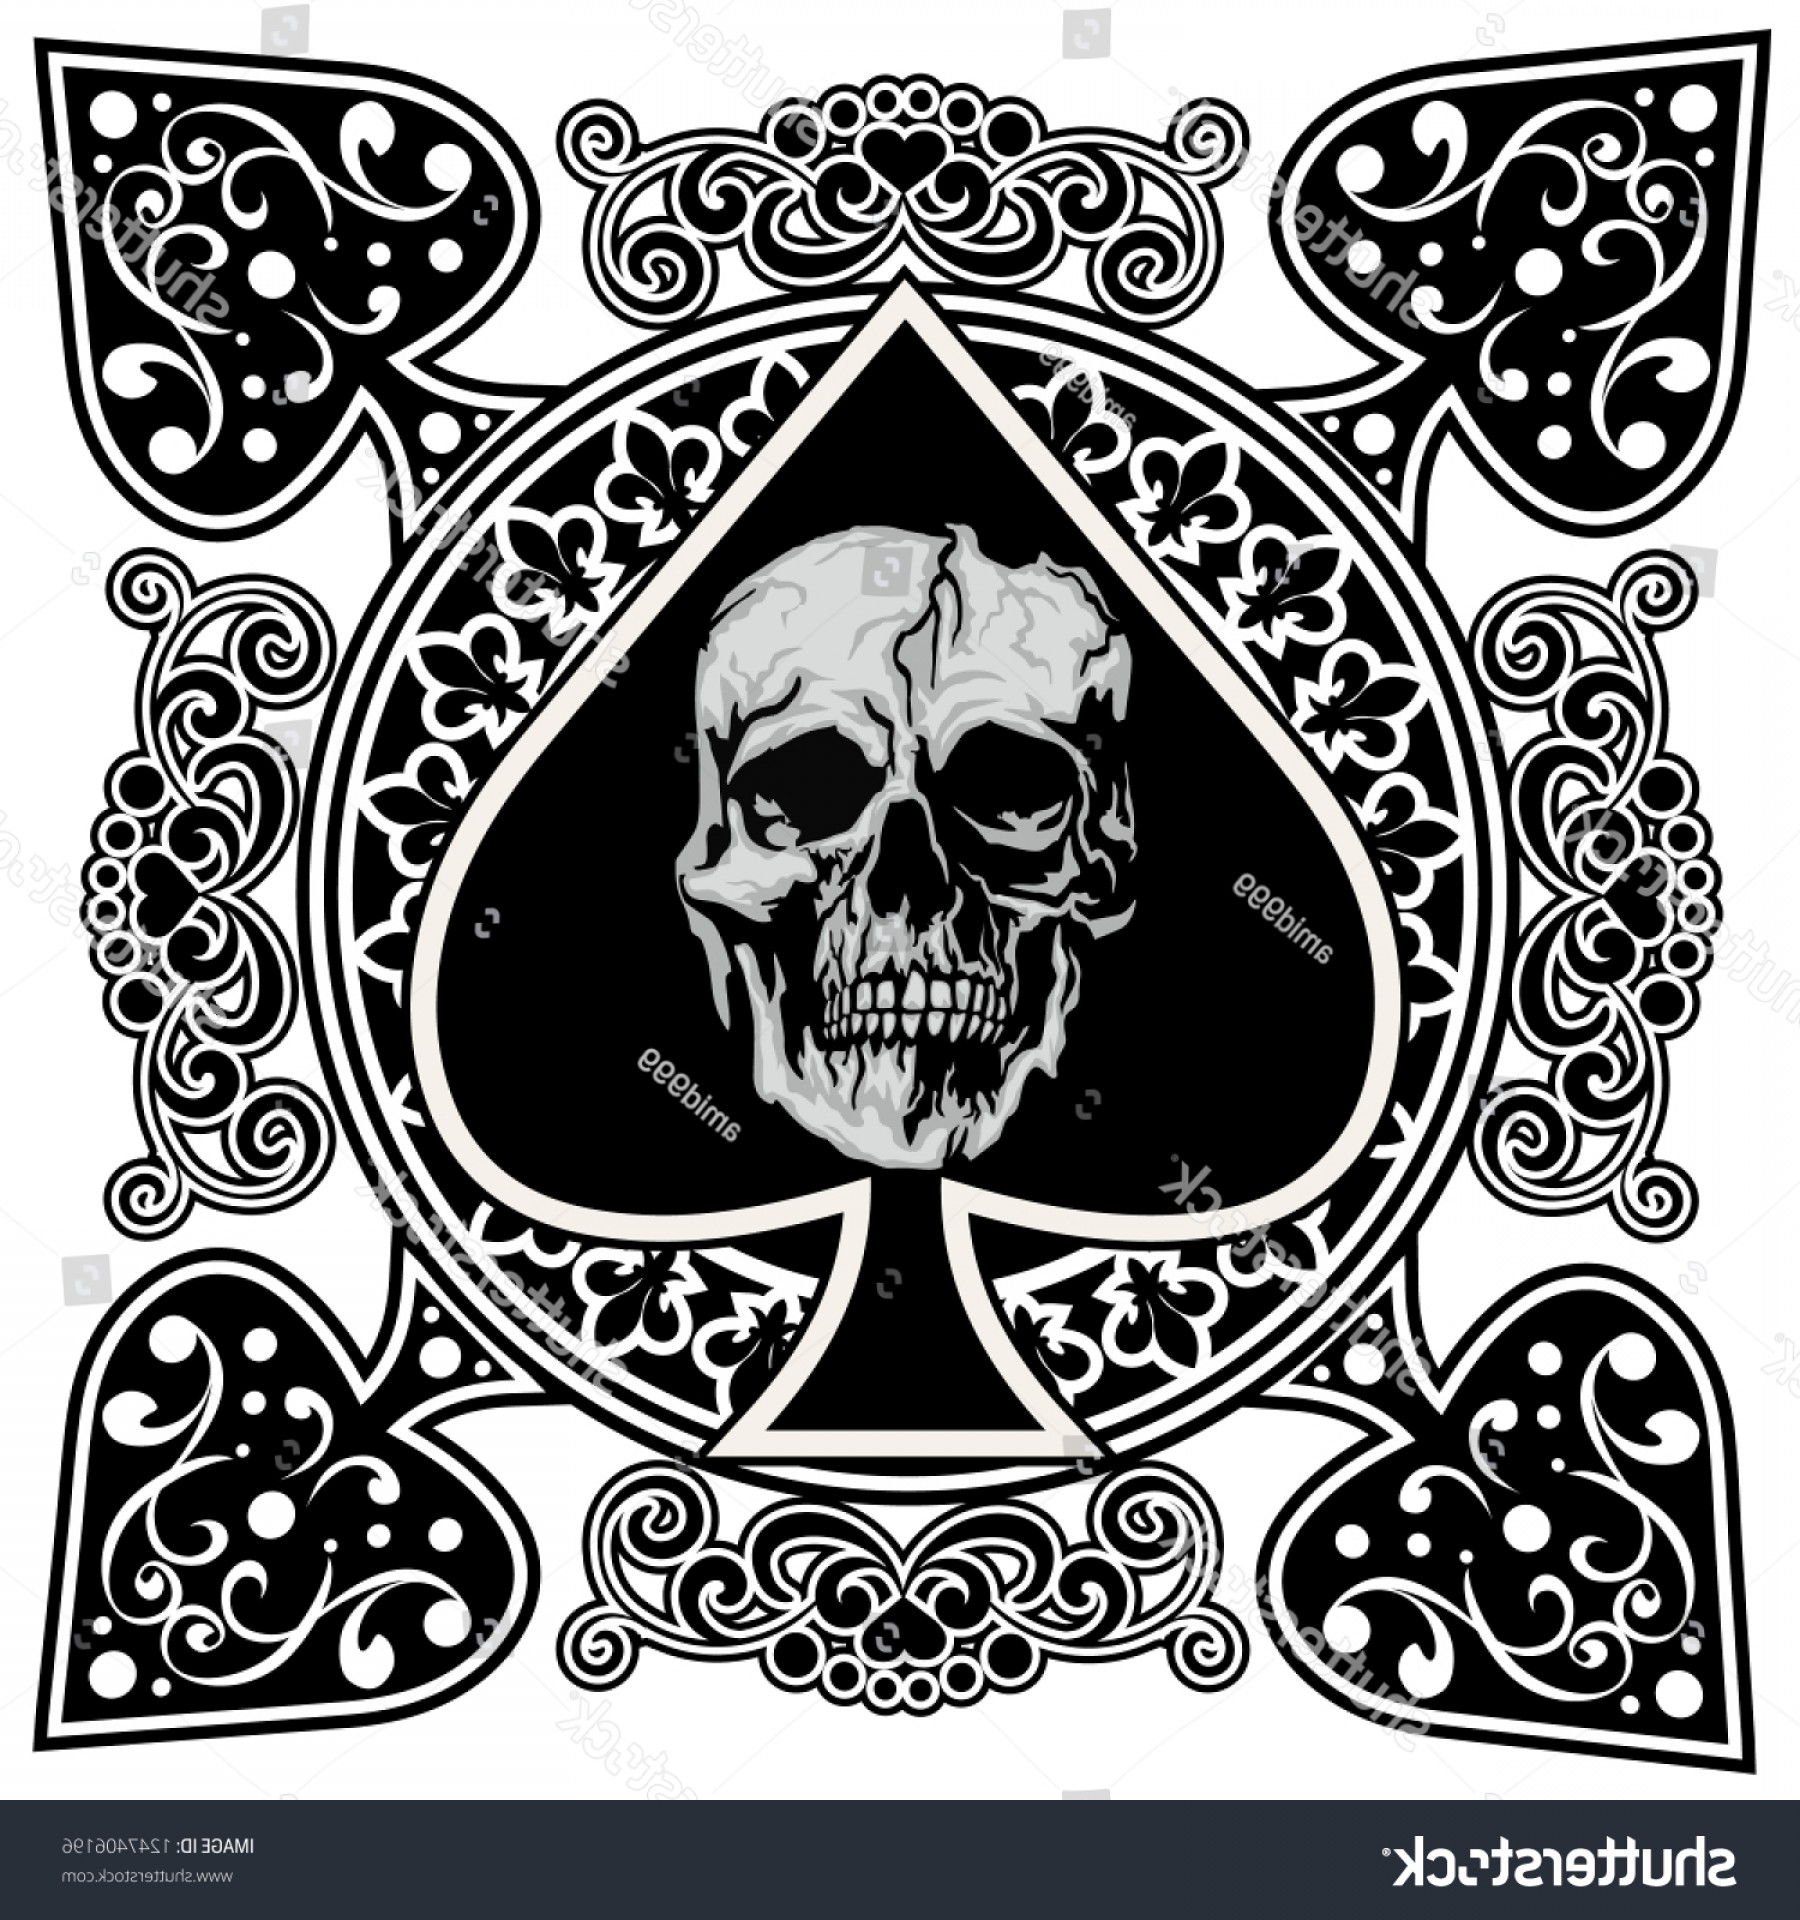 Playing Card Ace Spades Skull.